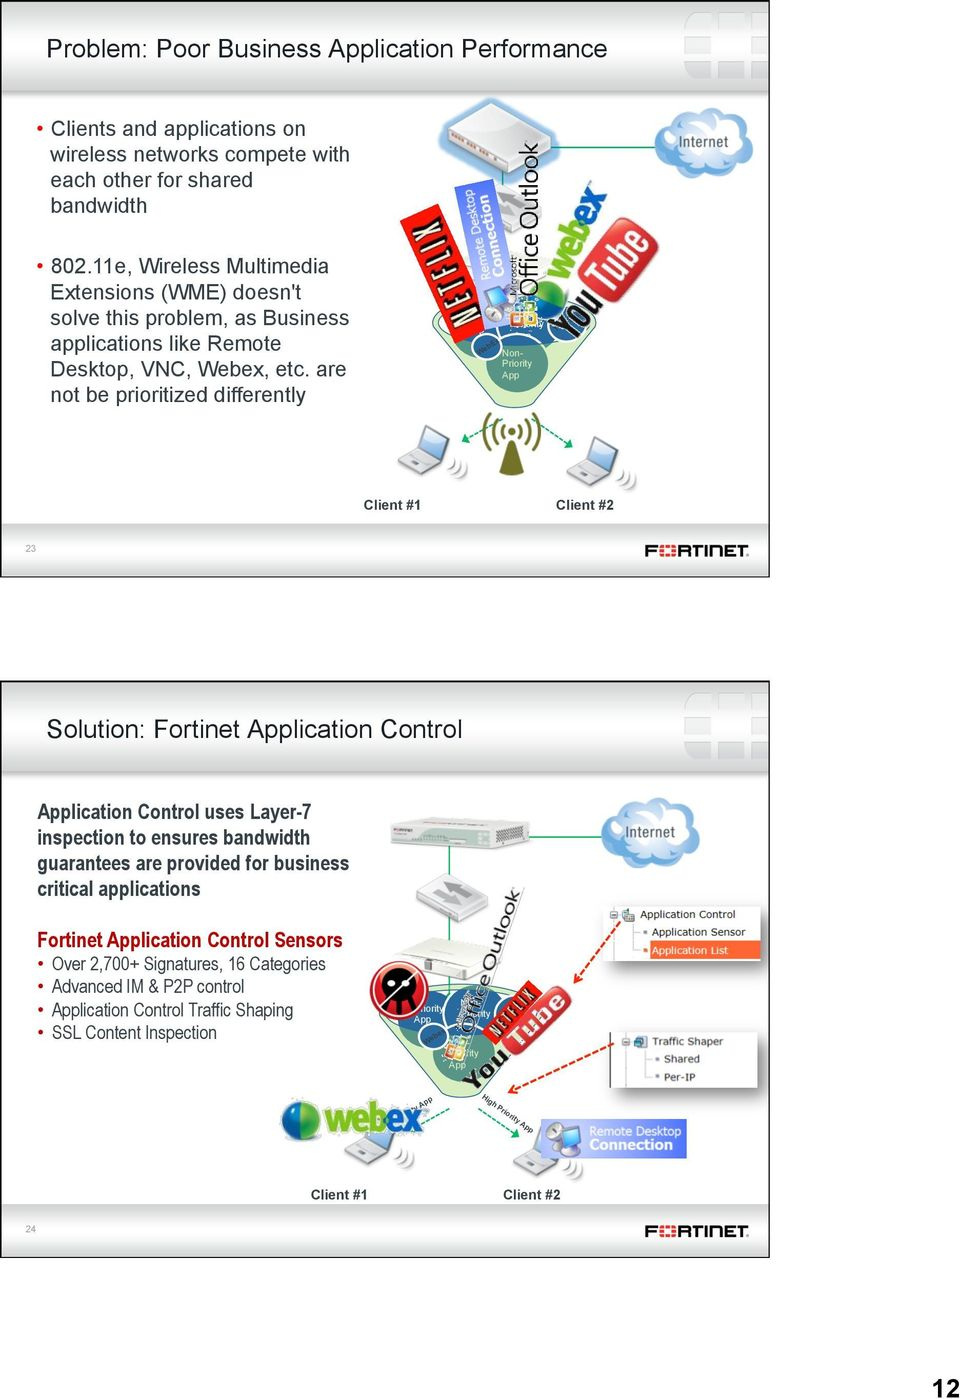 are not be prioritized differently Priority App WebEx Non- Priority App YouTube Client #1 Client #2 23 Solution: Fortinet Application Control Application Control uses Layer-7 inspection to ensures